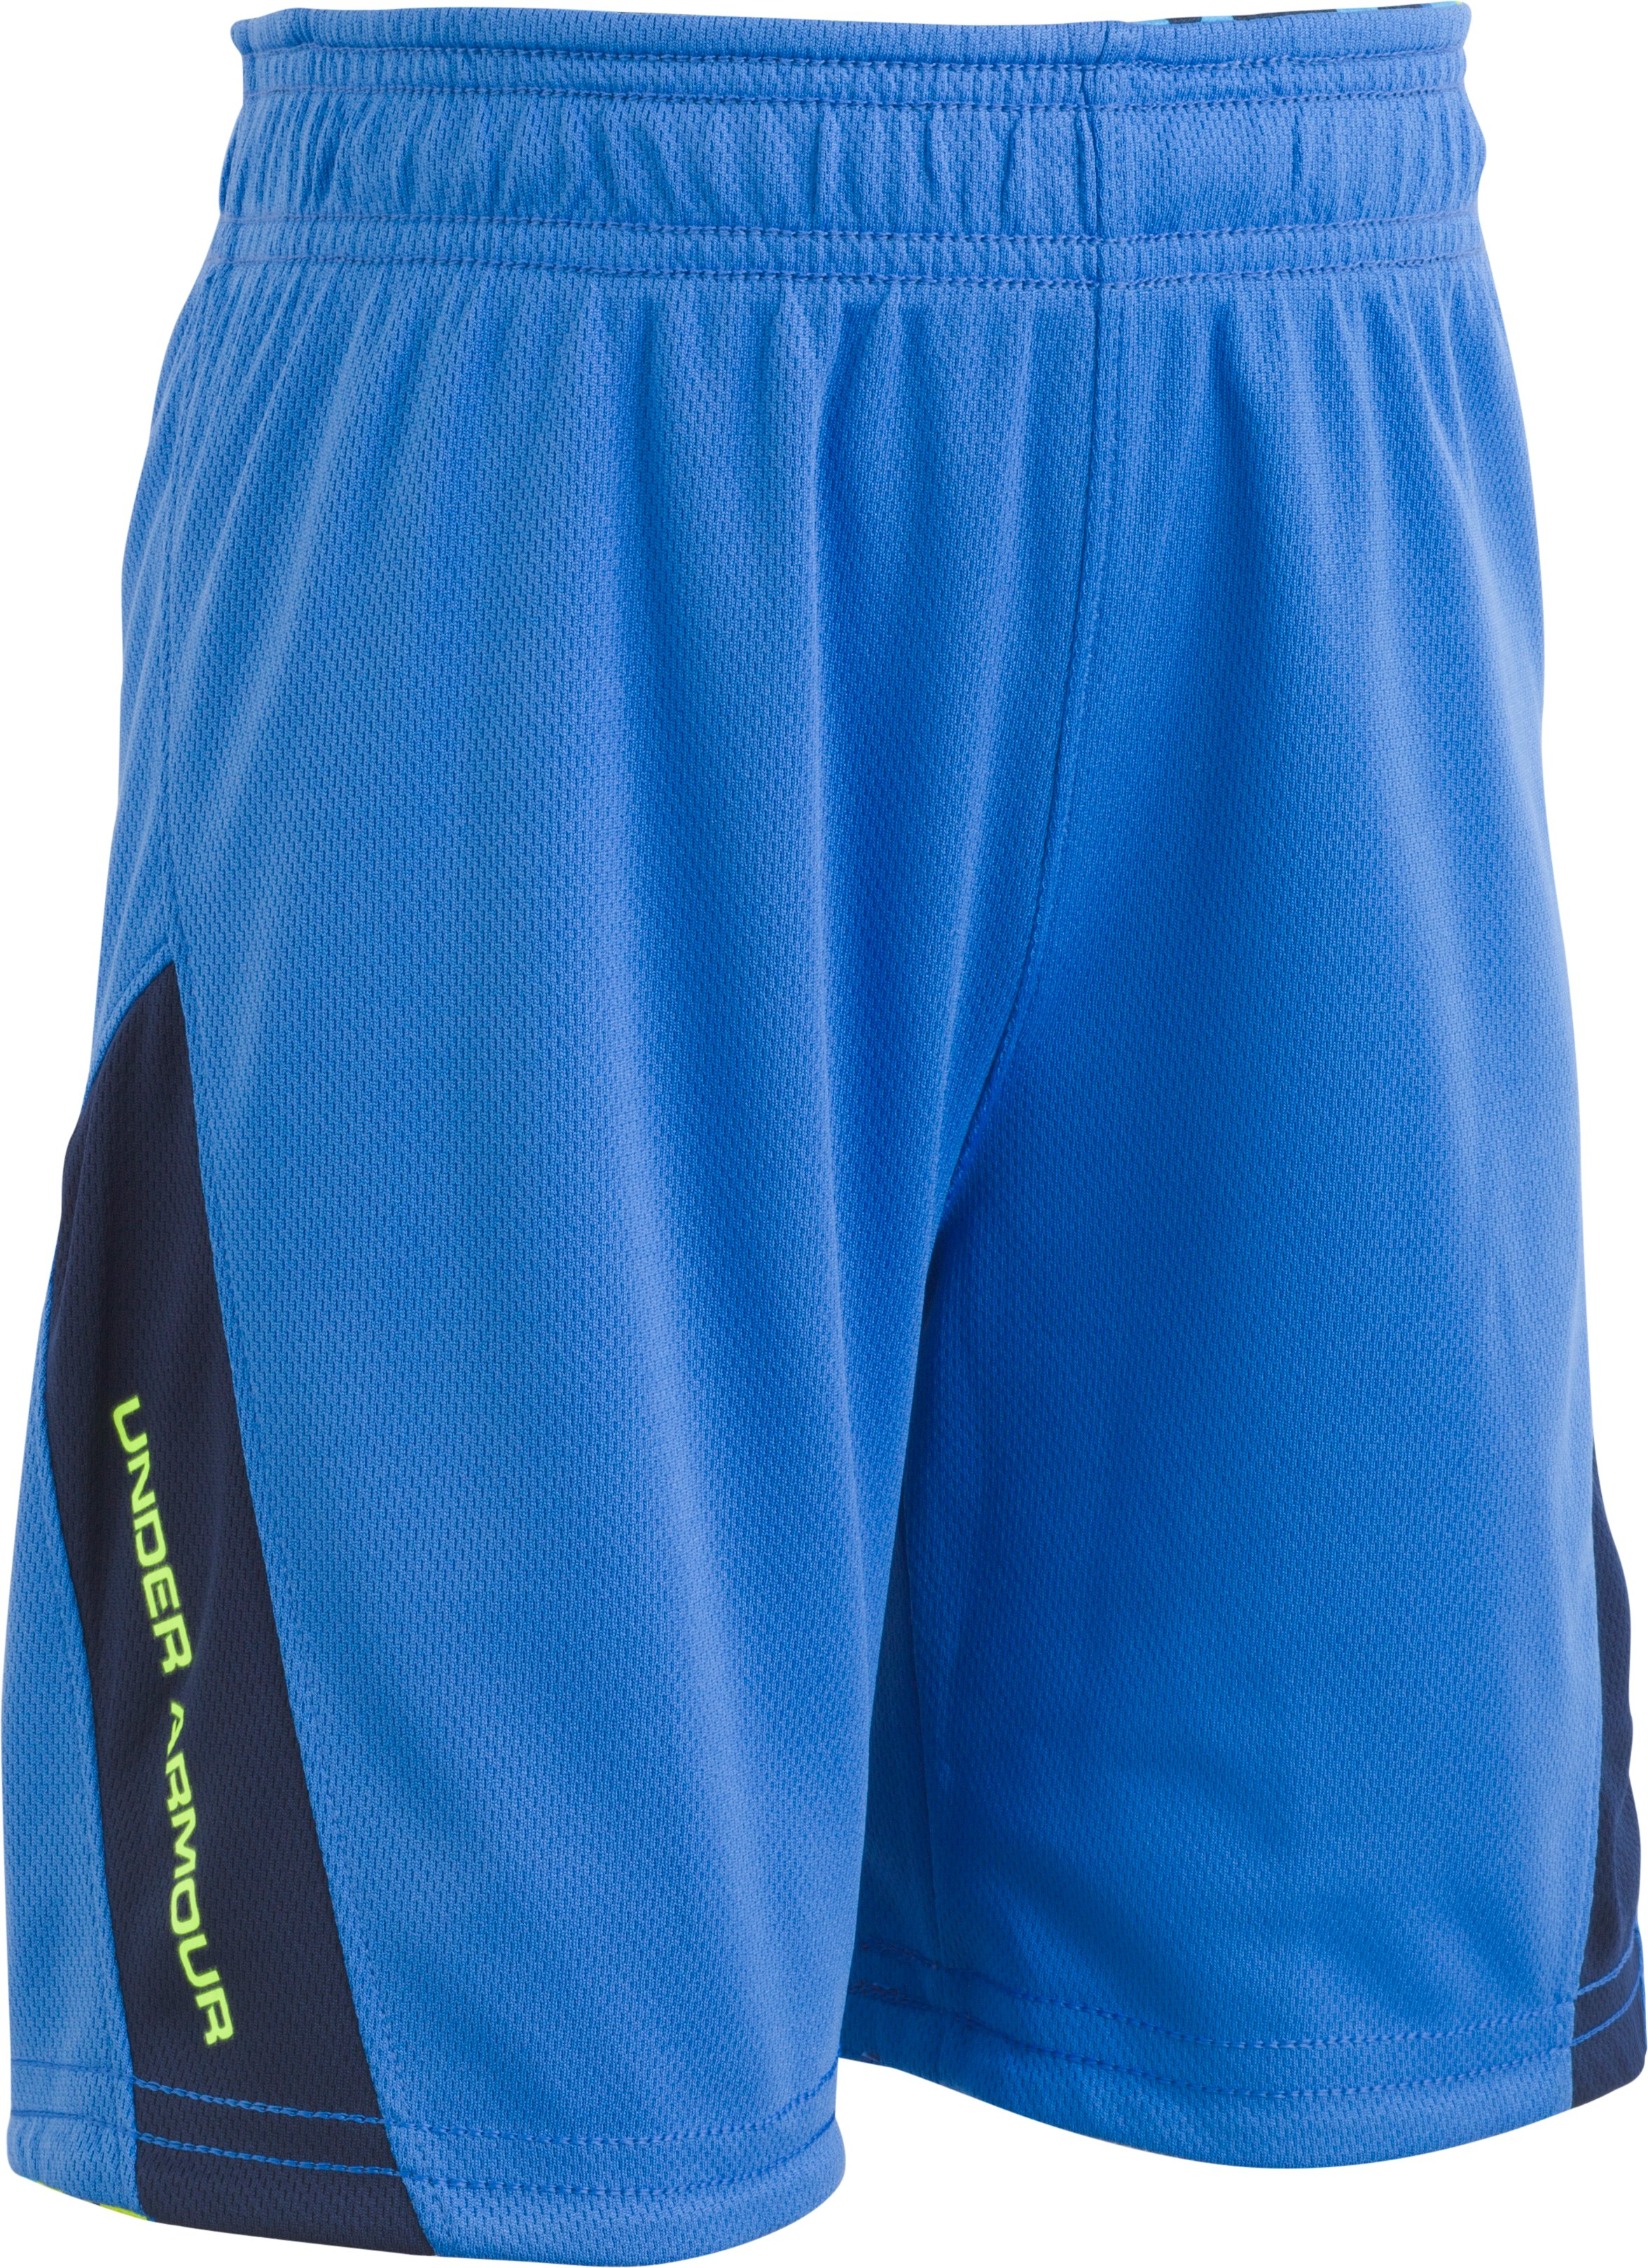 Boys' Pre-School UA Reversible Shorts, Mediterranean,